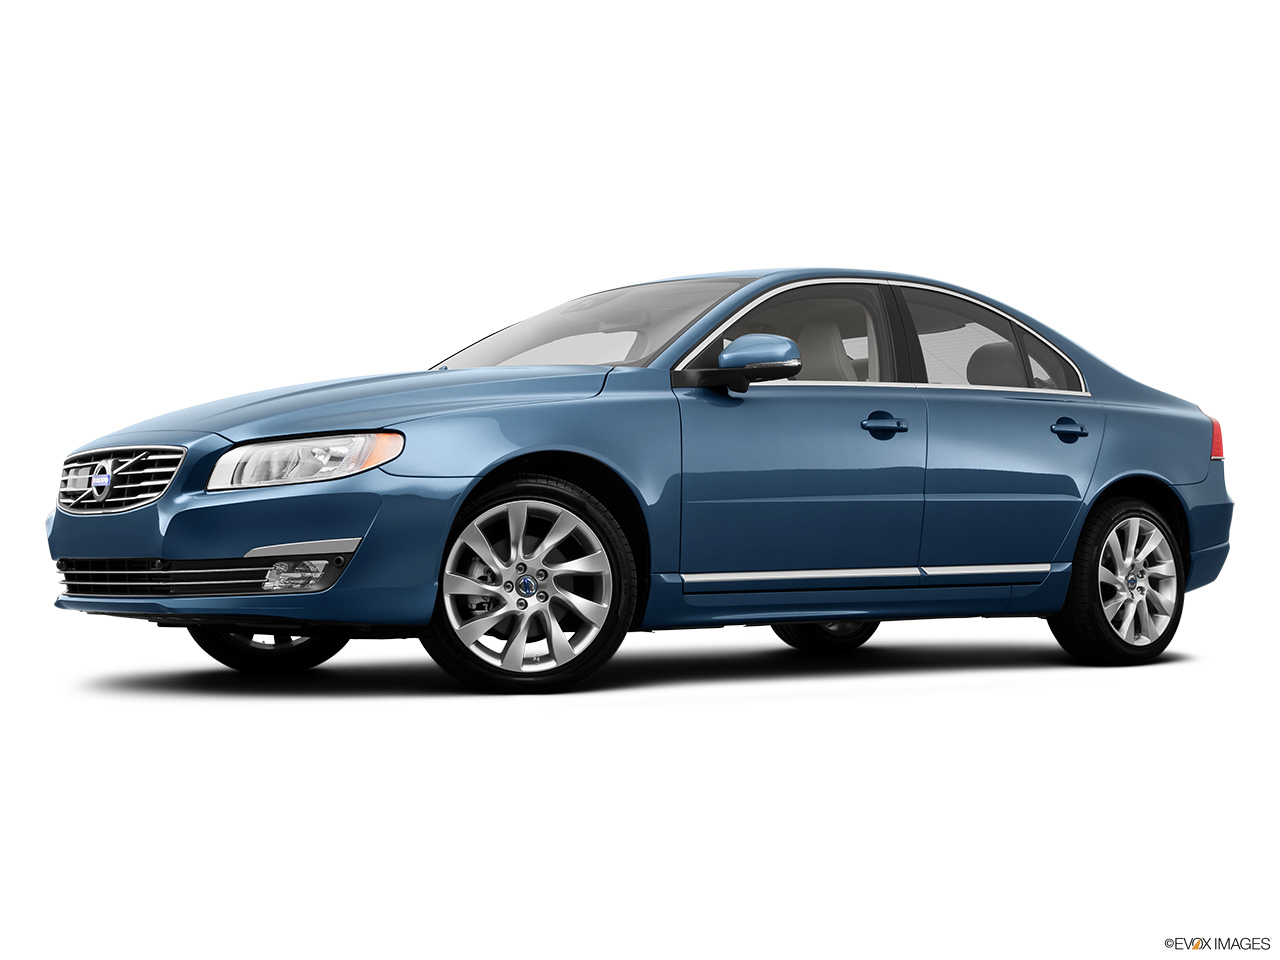 2014 Volvo S80 T6 AWD Platinum Low/wide front 5/8.